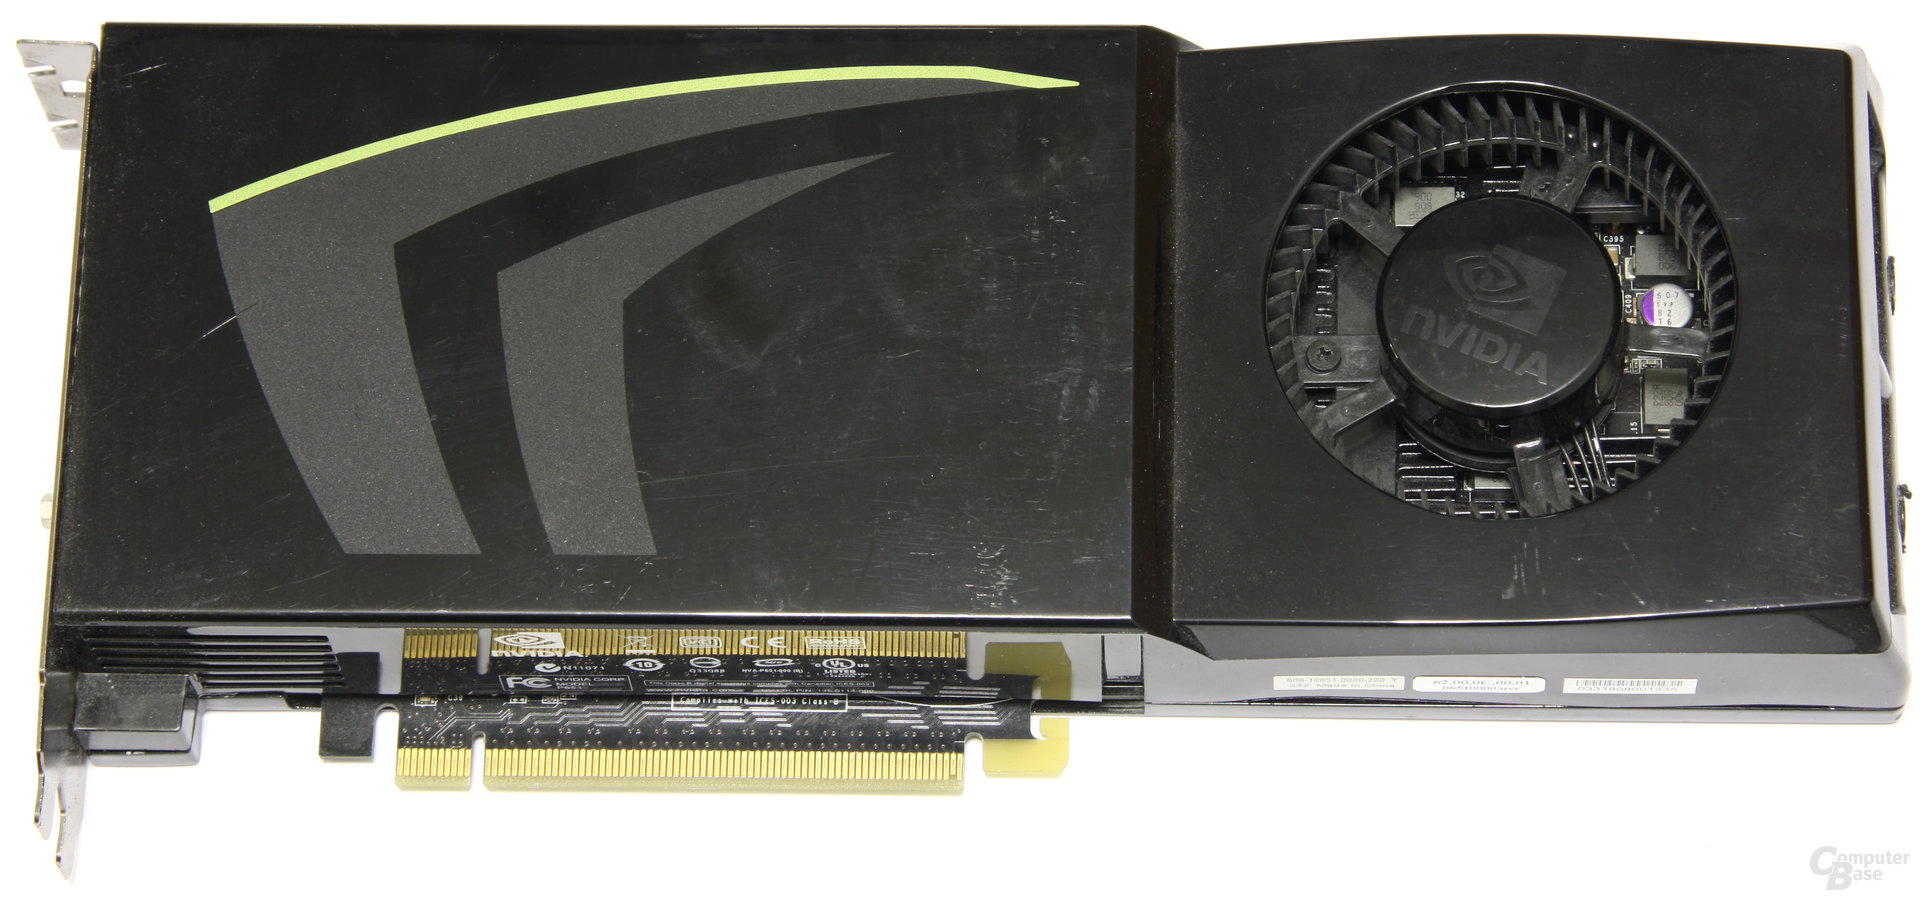 Nvidia GeForce GTX 280 (2008)